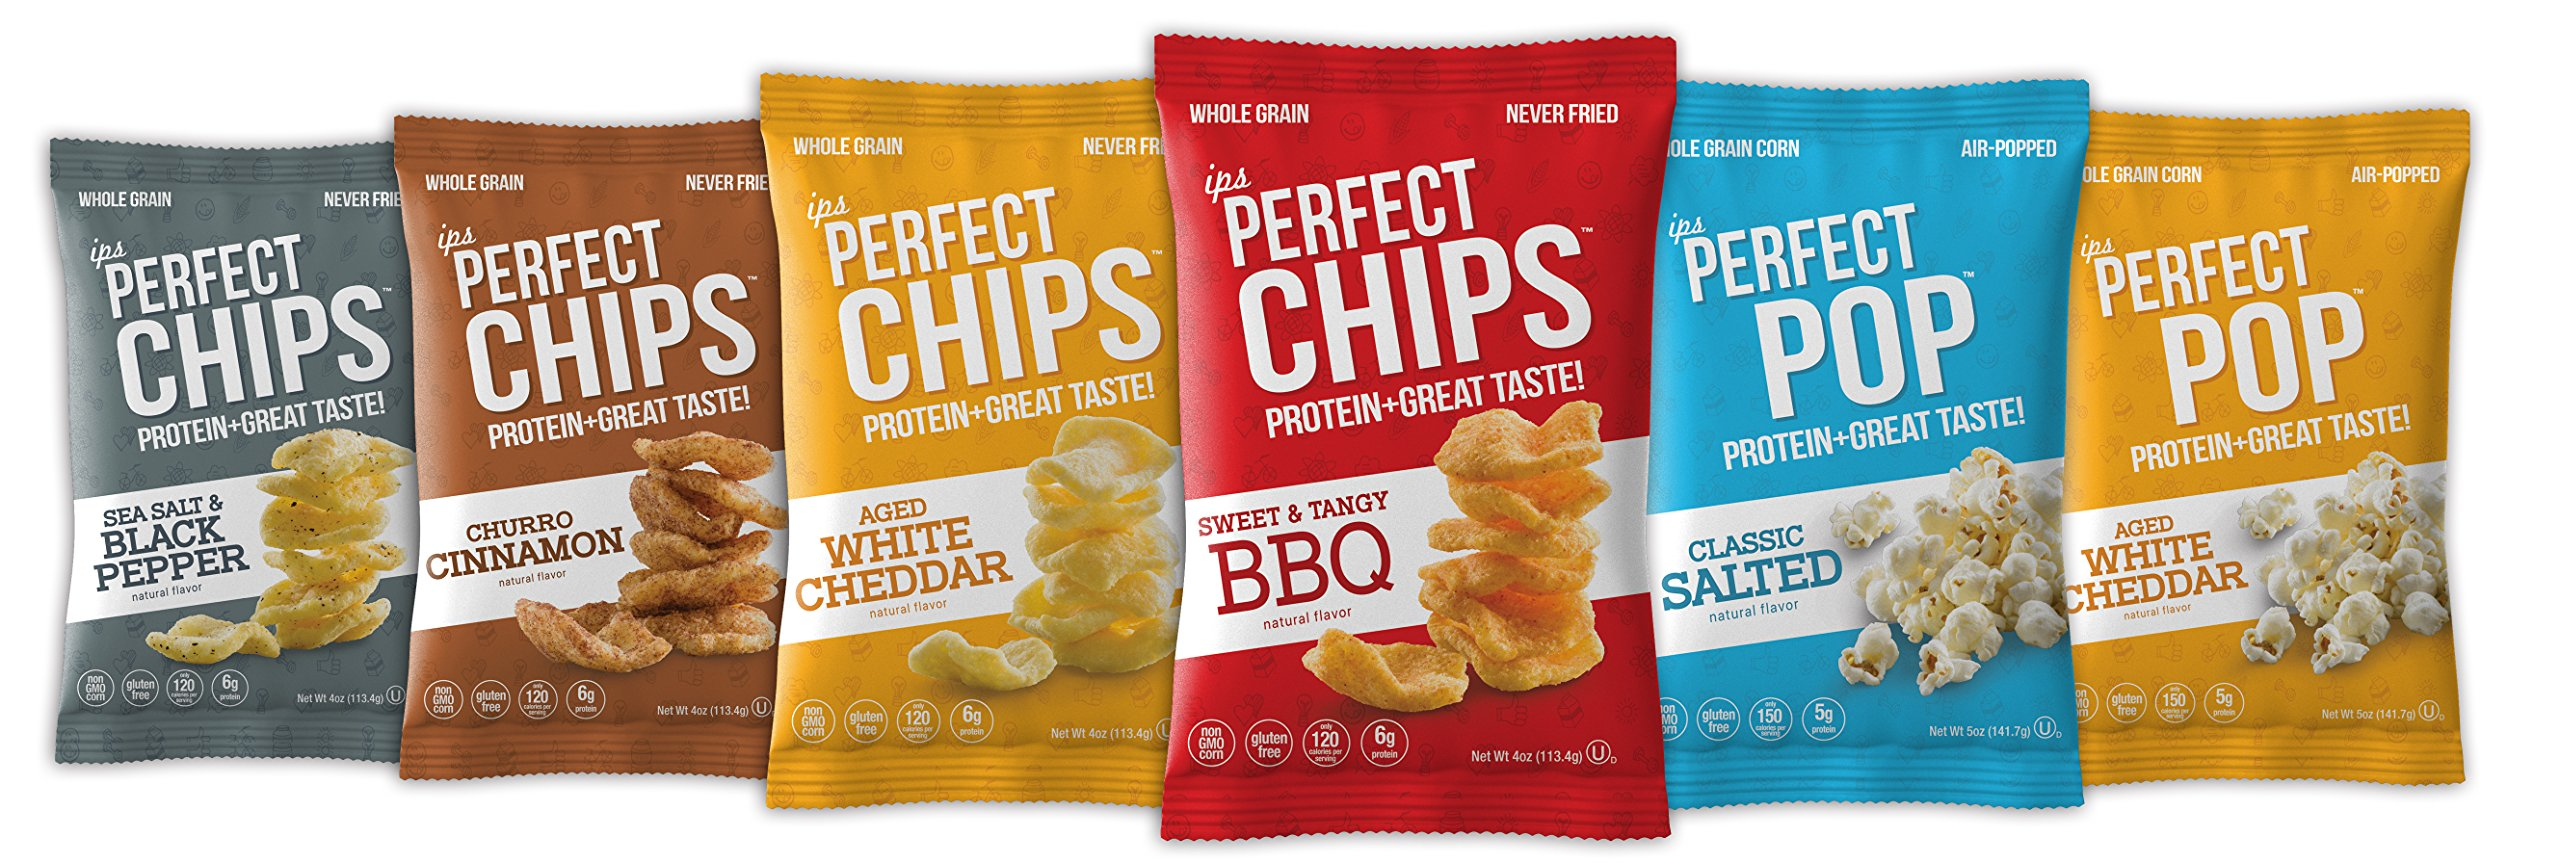 Protein Chips and Popcorn Variety Pack by IPS All Natural | IPS Chips and Pop Whey Protein Snack | Tasty and Healthy Snack With Low Carb, Gluten Free, Non GMO Corn, No Artificials | 1oz Pack of 8